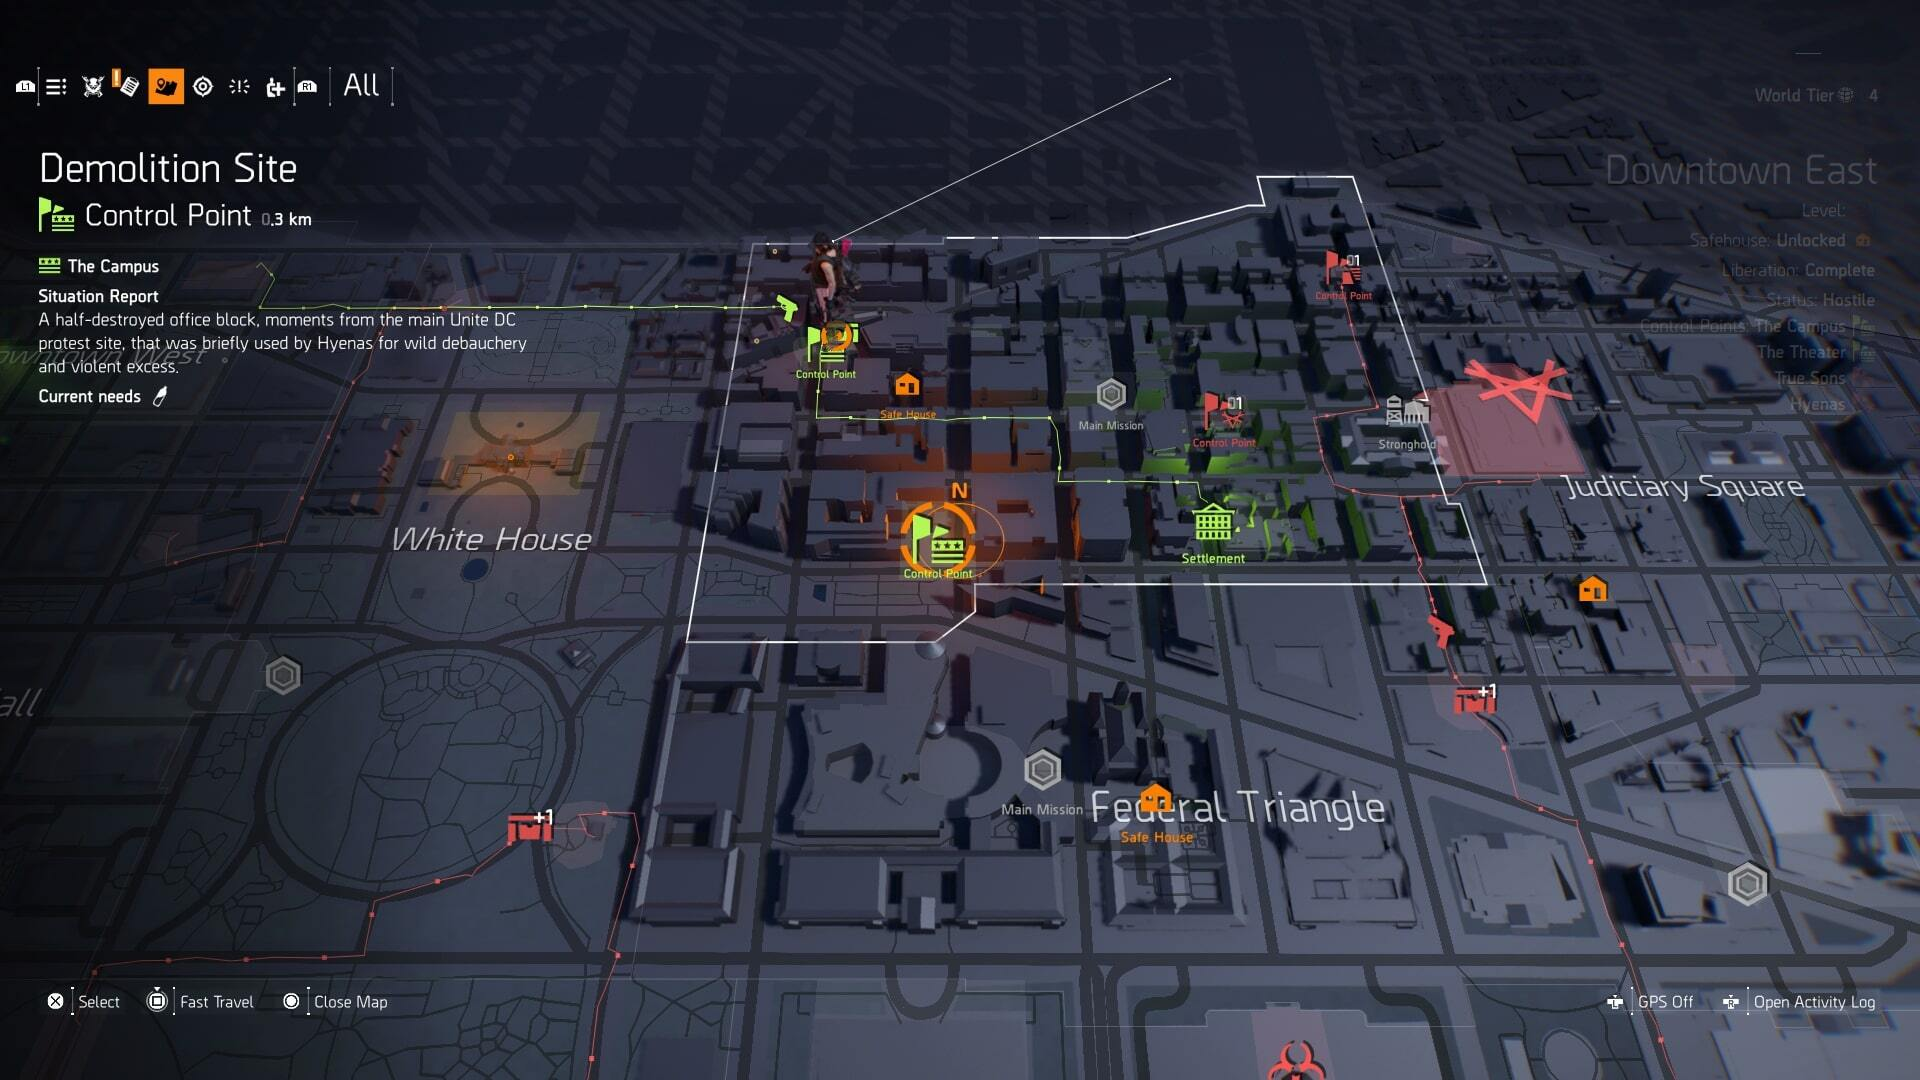 The Division 2 Control Points - How to Level Up Control Points and Get Alert Level 4 in The Division 2